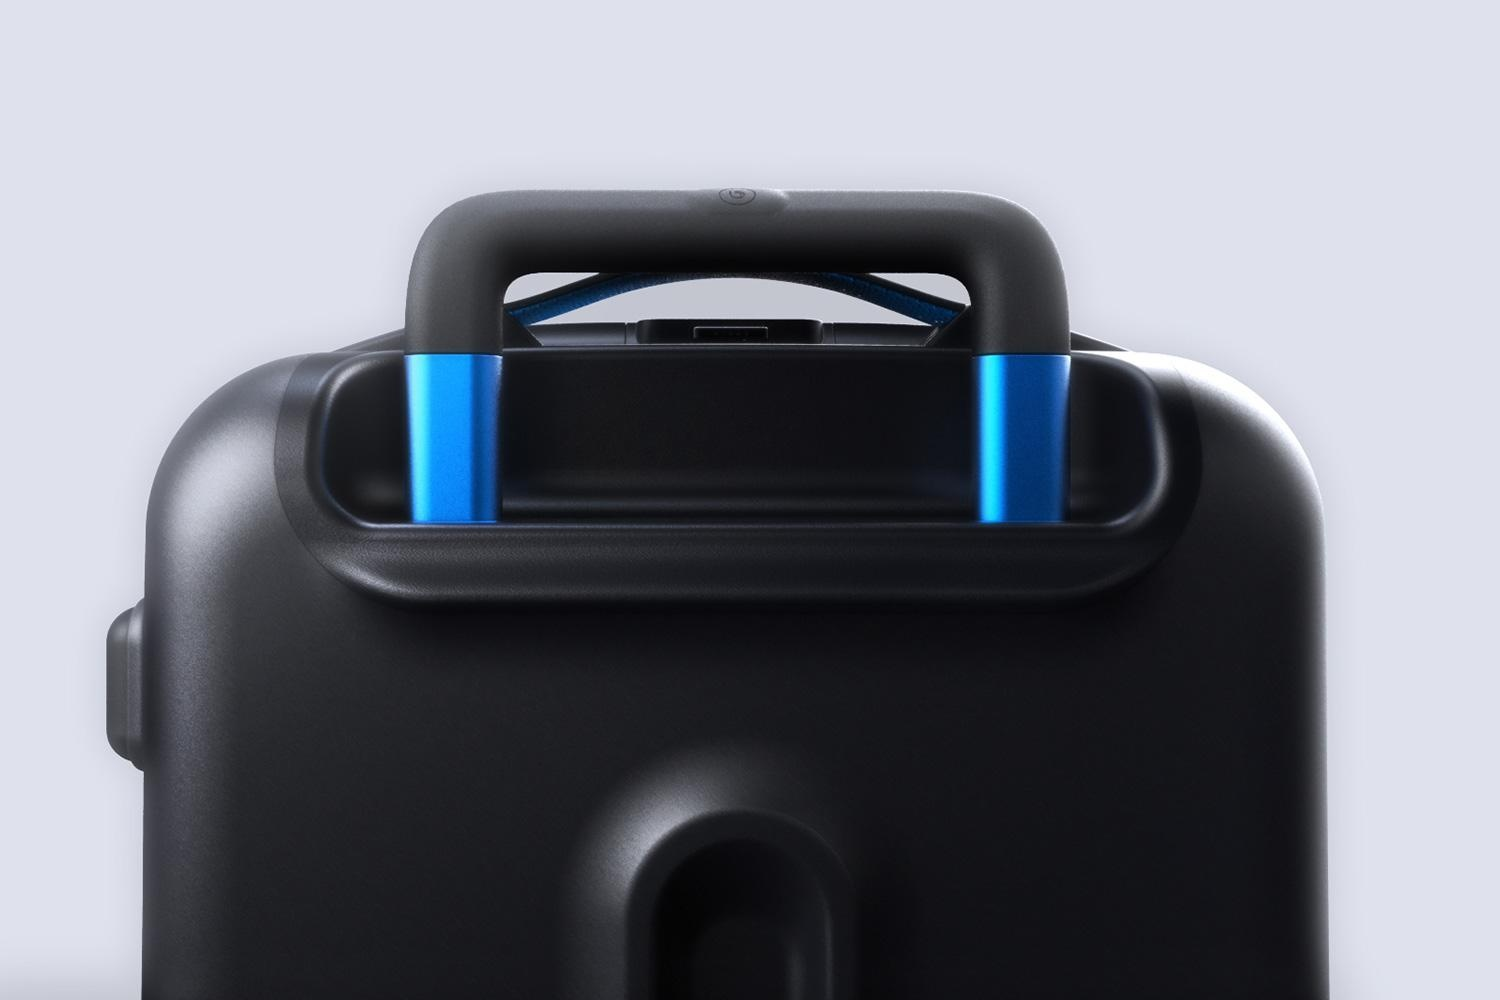 bluesmart-connected-suitcase-handle-1500×1000